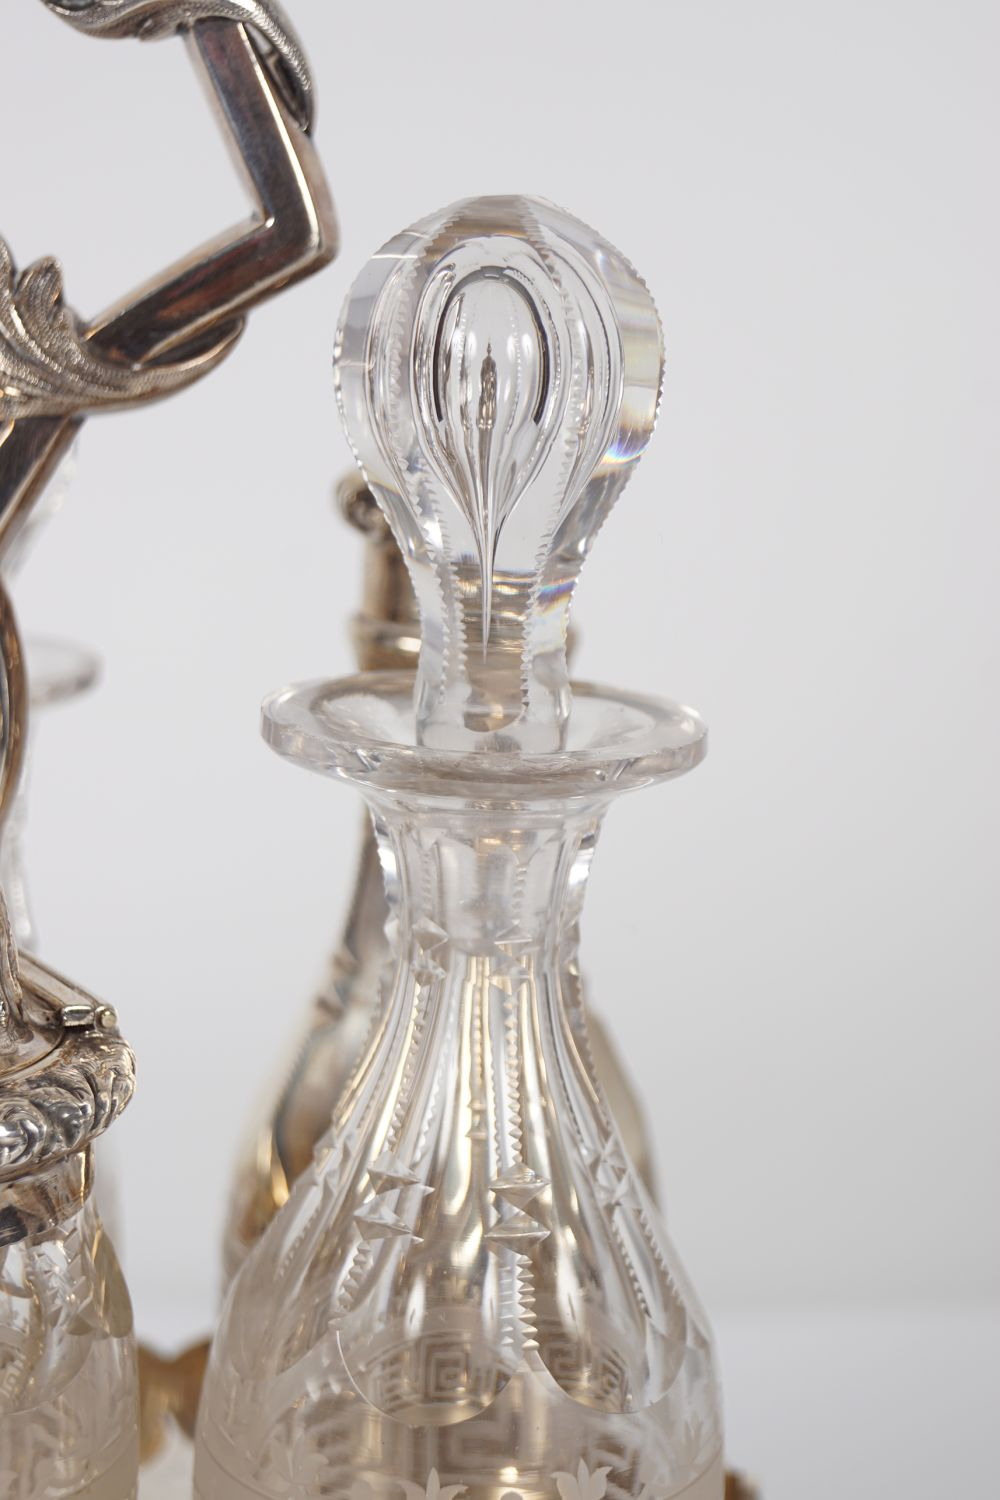 SILVER CONDIMENT SET - Image 3 of 7